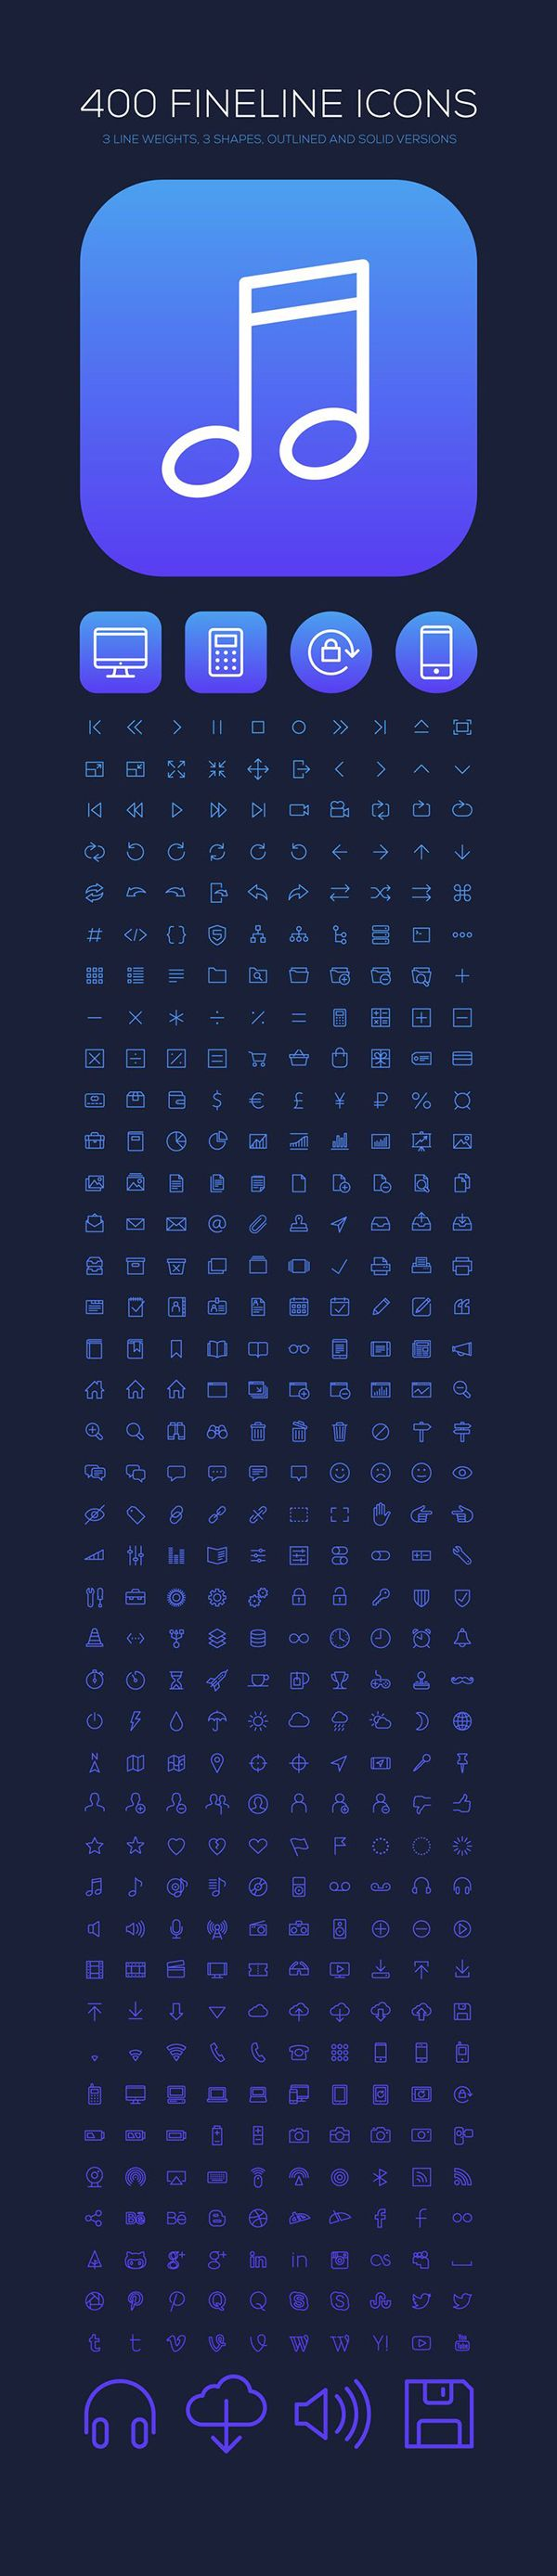 Each icon is provided in 3 different line weights with 3 different shapes (circle, rounded rectangle and square). Each icon is supplied in selected (solid) and unselected (outlined) states. The icons are provided in Adobe Photoshop (PSD) and as vector Ado…